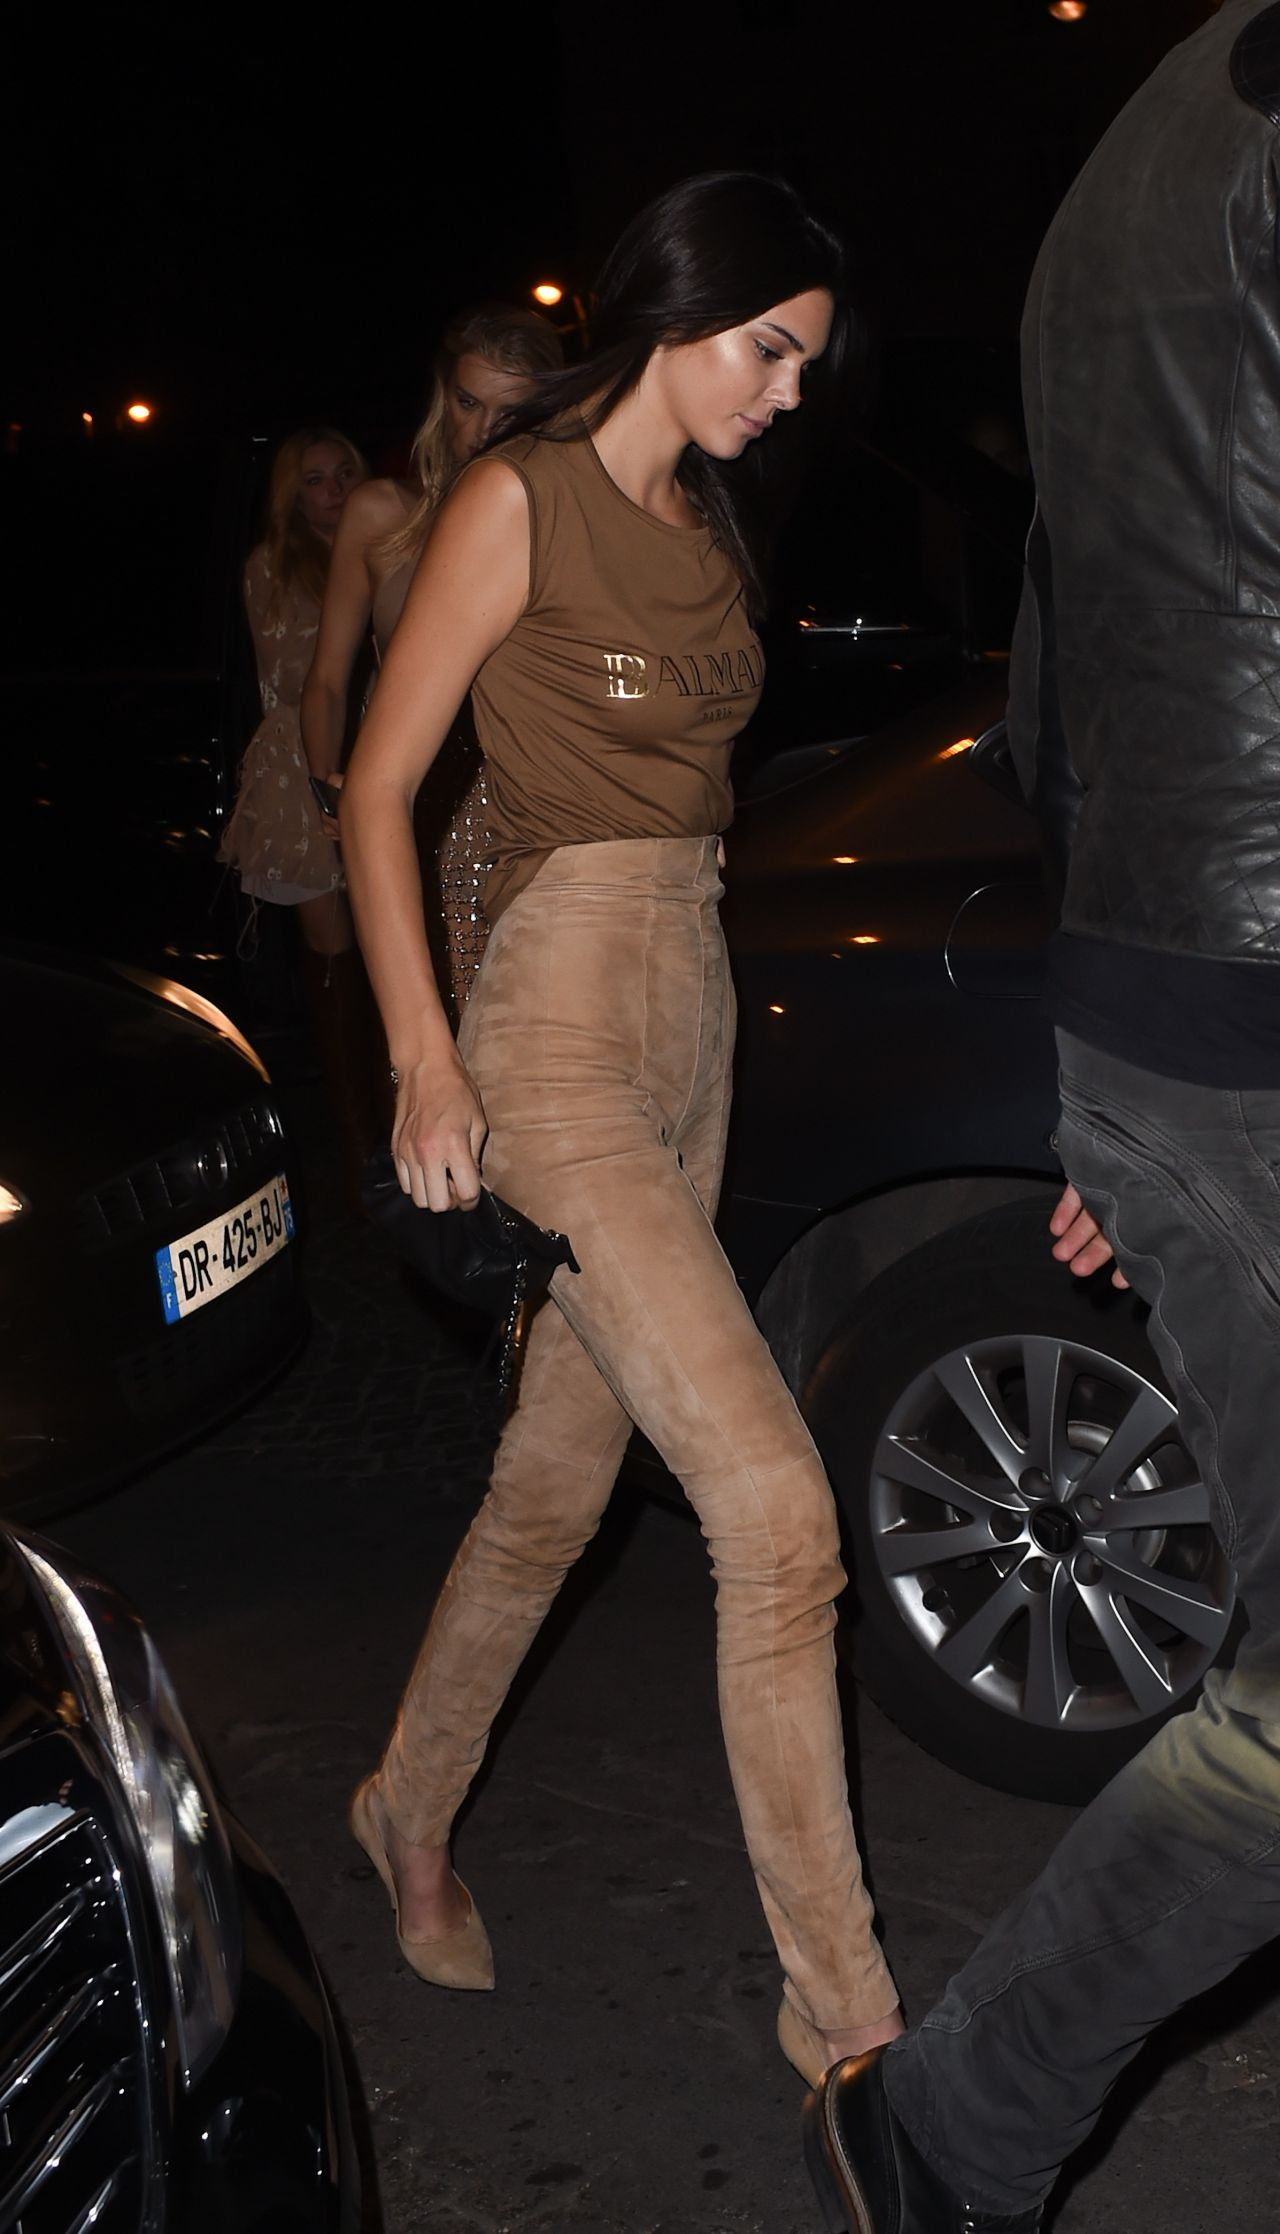 kendall-jenner-night-out-style-at-le-six-seven-in-paris-october-2015_6